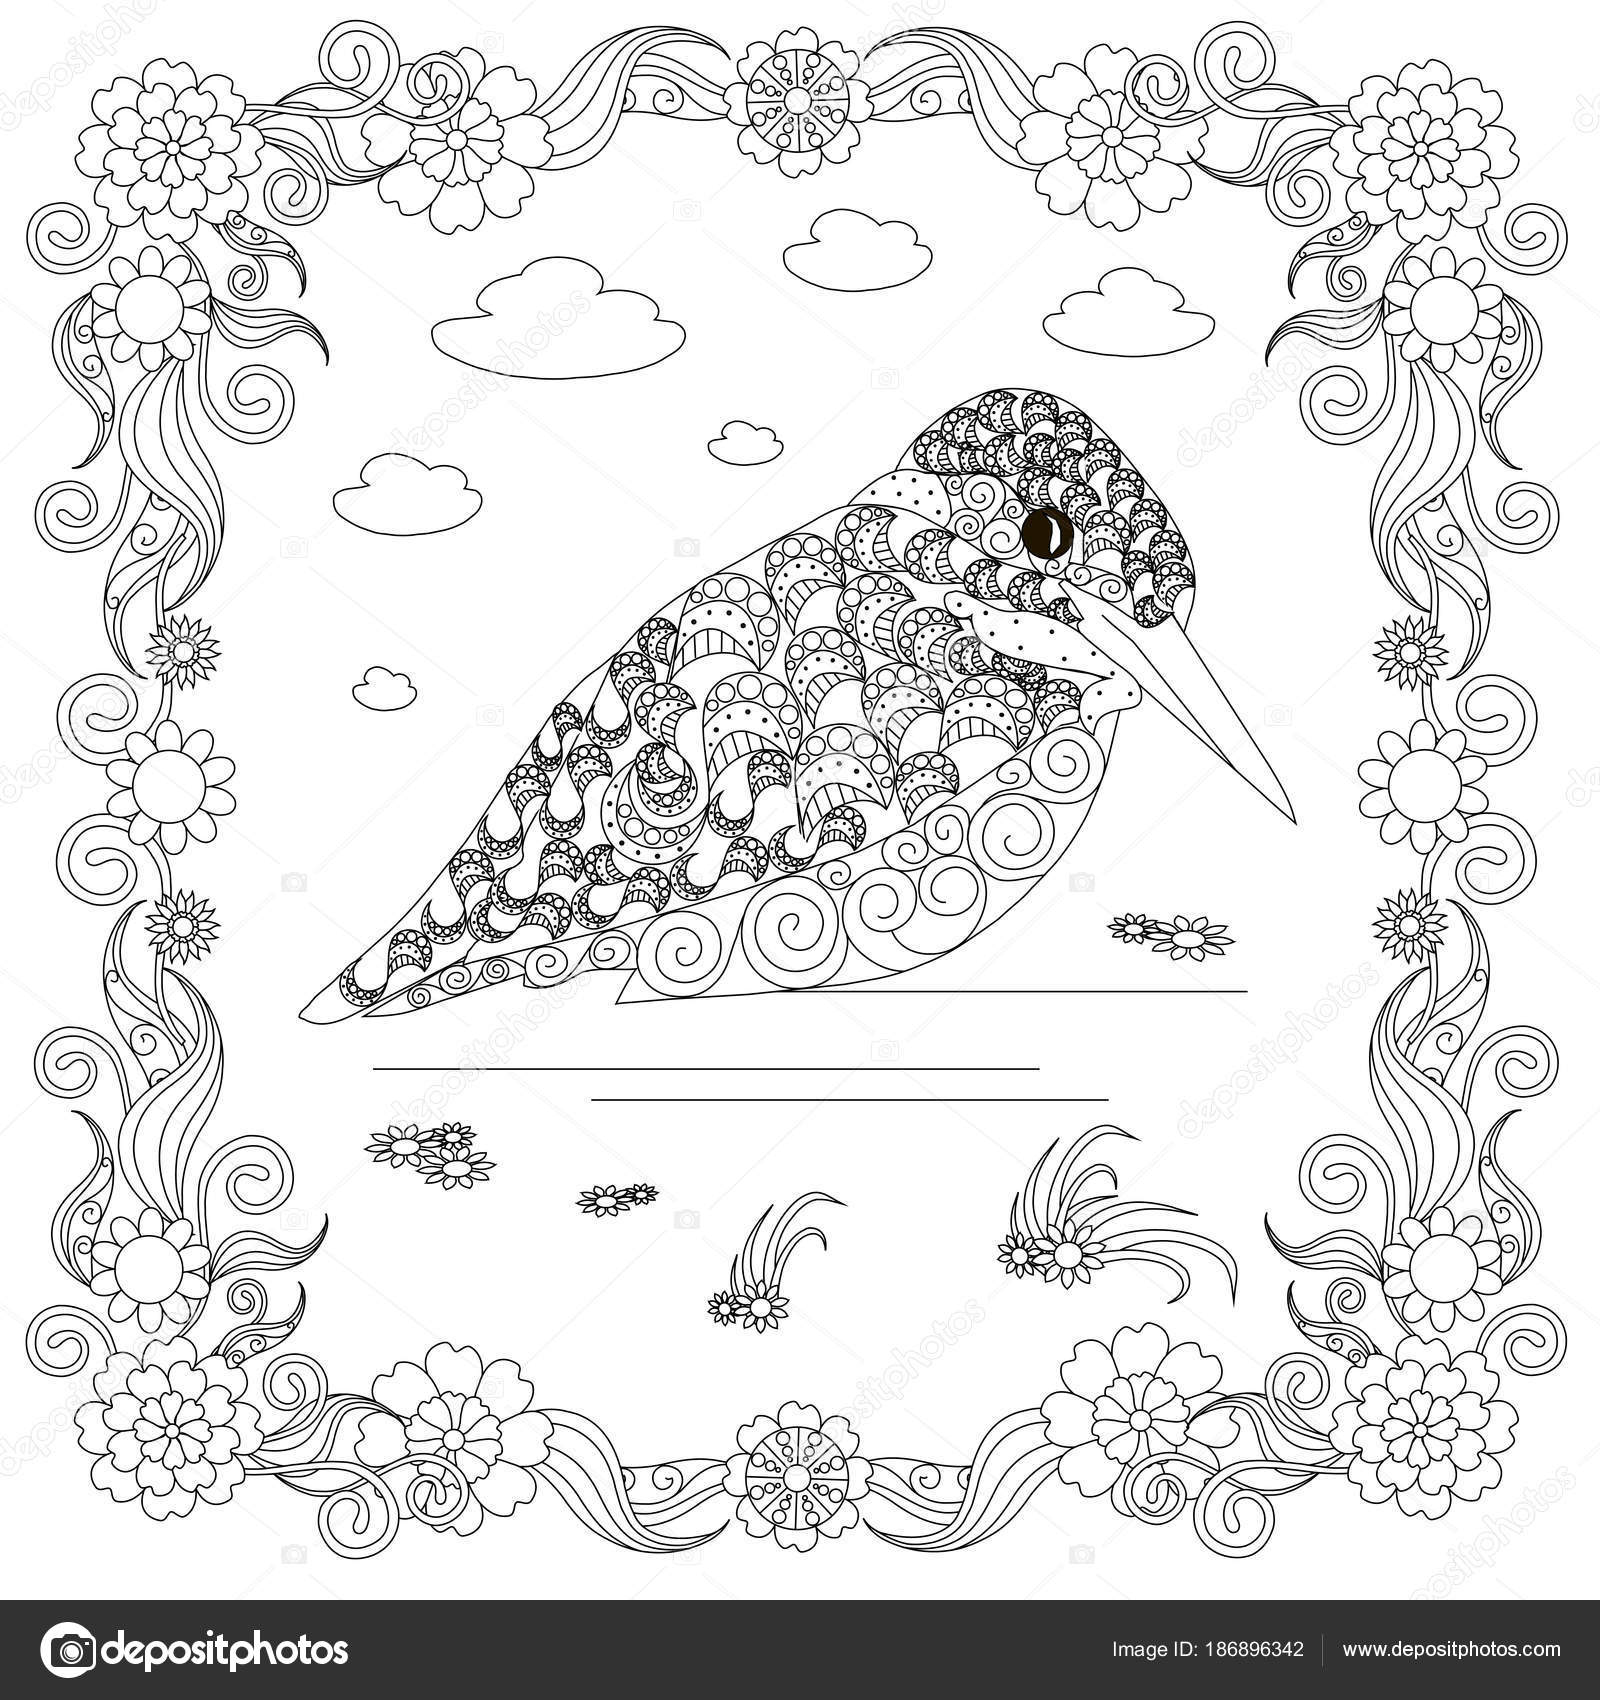 Zentangle Style Kingfisher Flower Frame Monochrome Sketch Coloring Page  Antistress U2014 Stock Vector